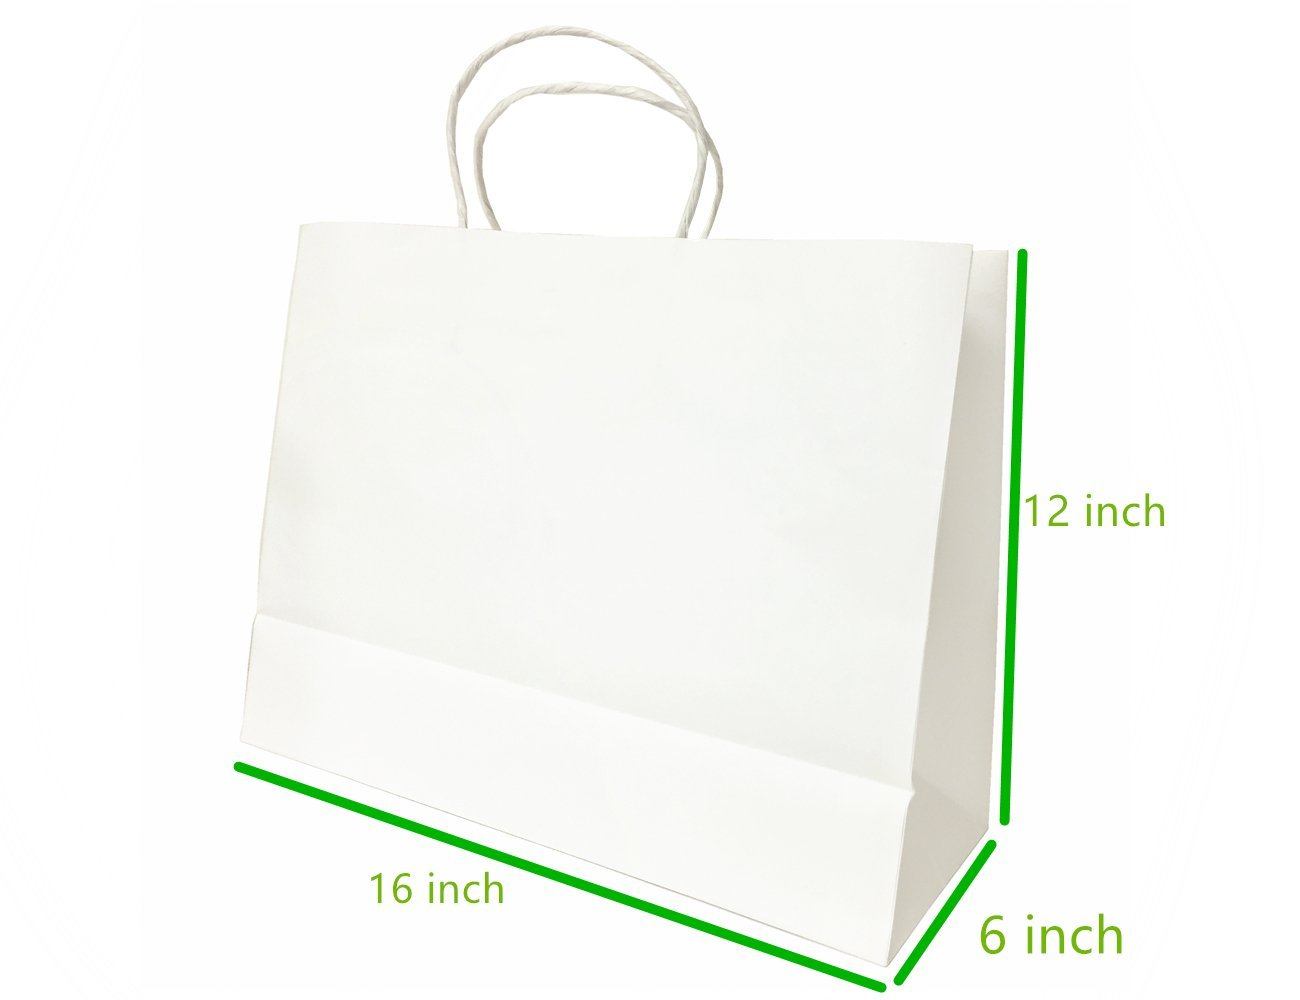 Metrogalaxy Premium Kraft Paper Bag 16 '' X 6 '' X 12 '', White, 200 PC Gift Shopping Bag, Grocery Shopping, Recycle Twisted Handle Bags